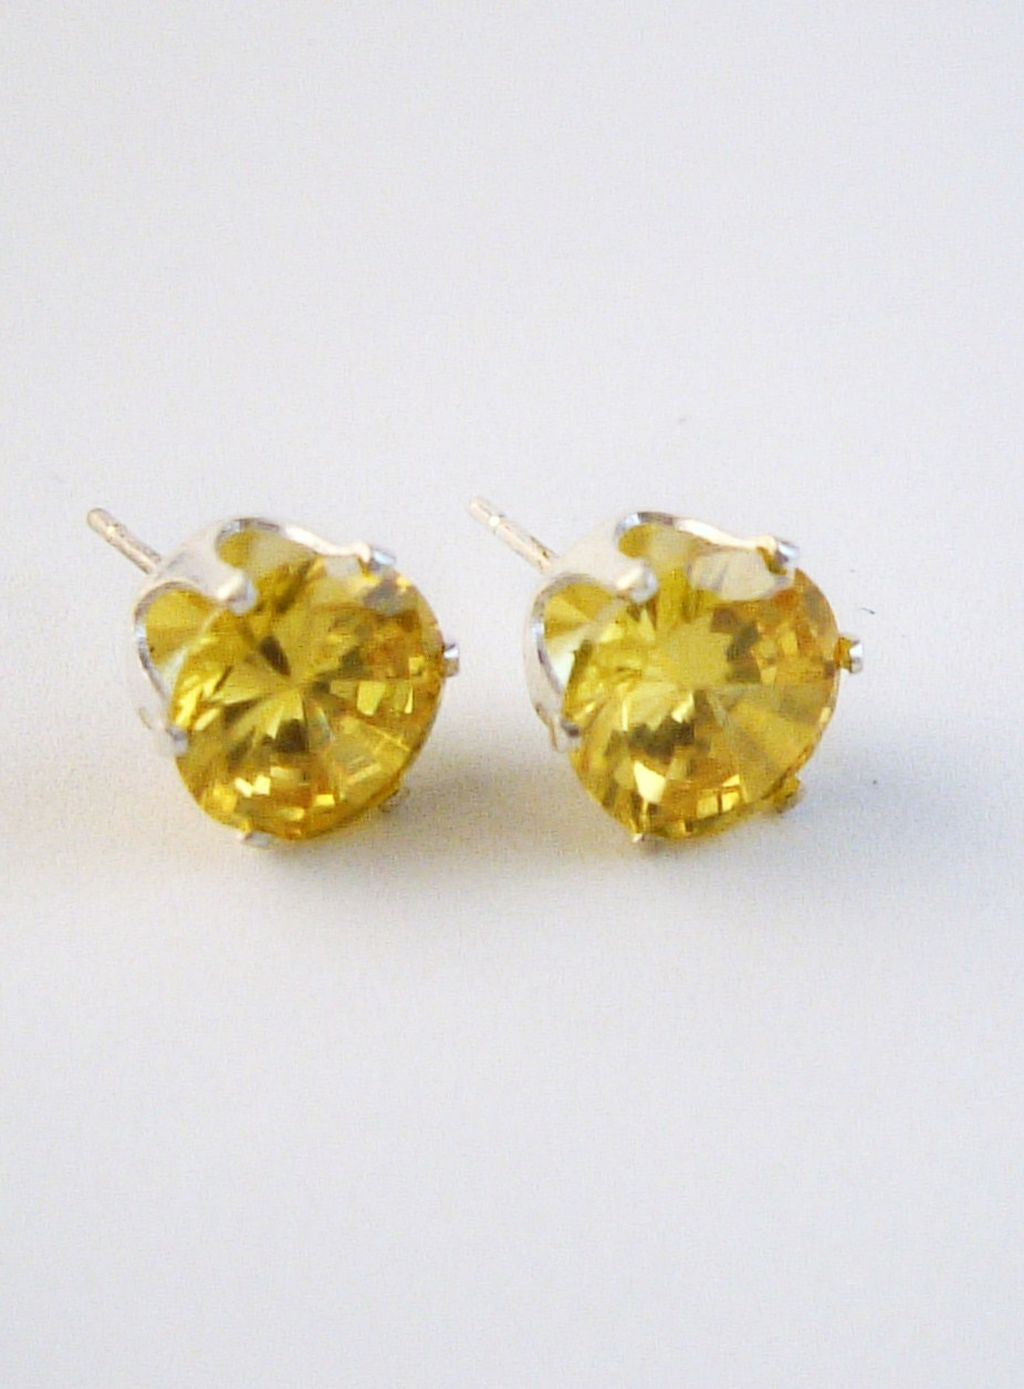 Yellow Sapphire Round Cut Silver Stud Earrings Genuine CZ Cubic Zirconia